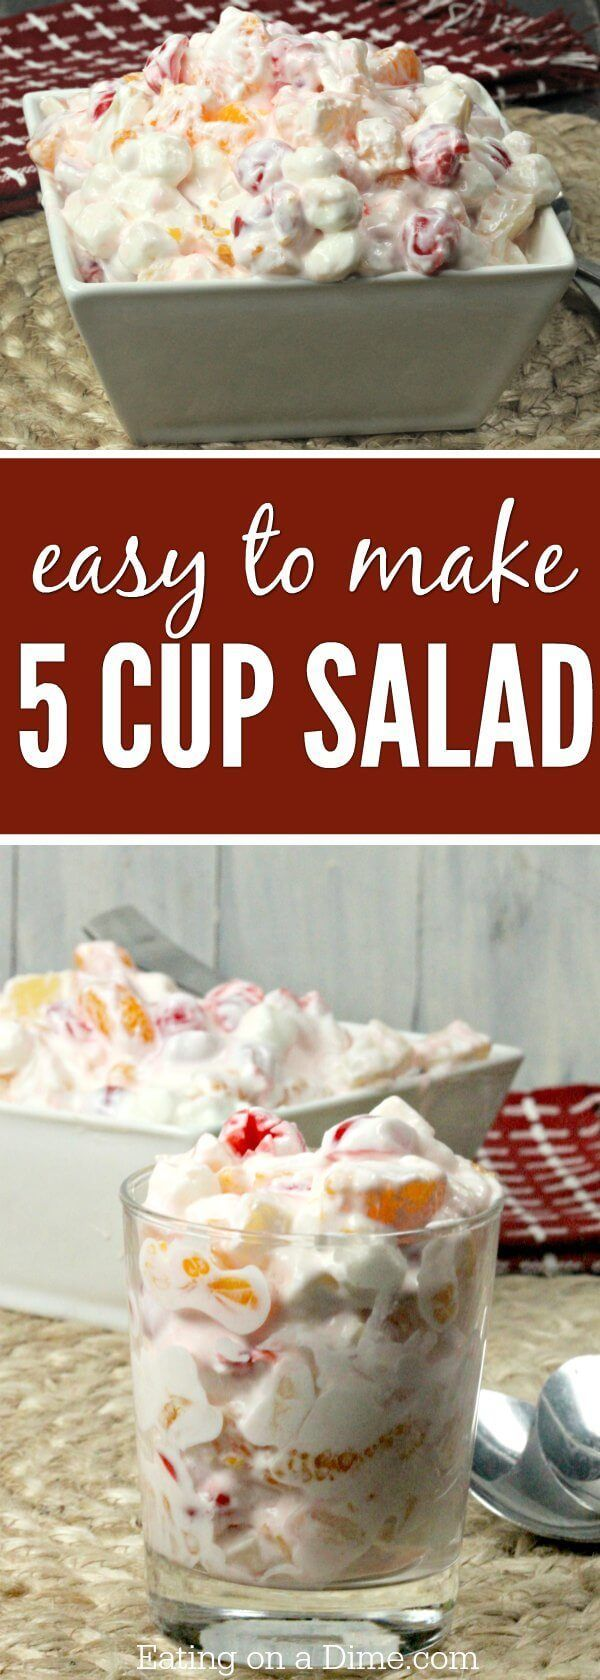 A classic 5 Cup Salad Recipe! You are going to love this Easy Ambrosia recipe. Sour cream gives this Ambrosia Salad the perfect tang! Try it today!